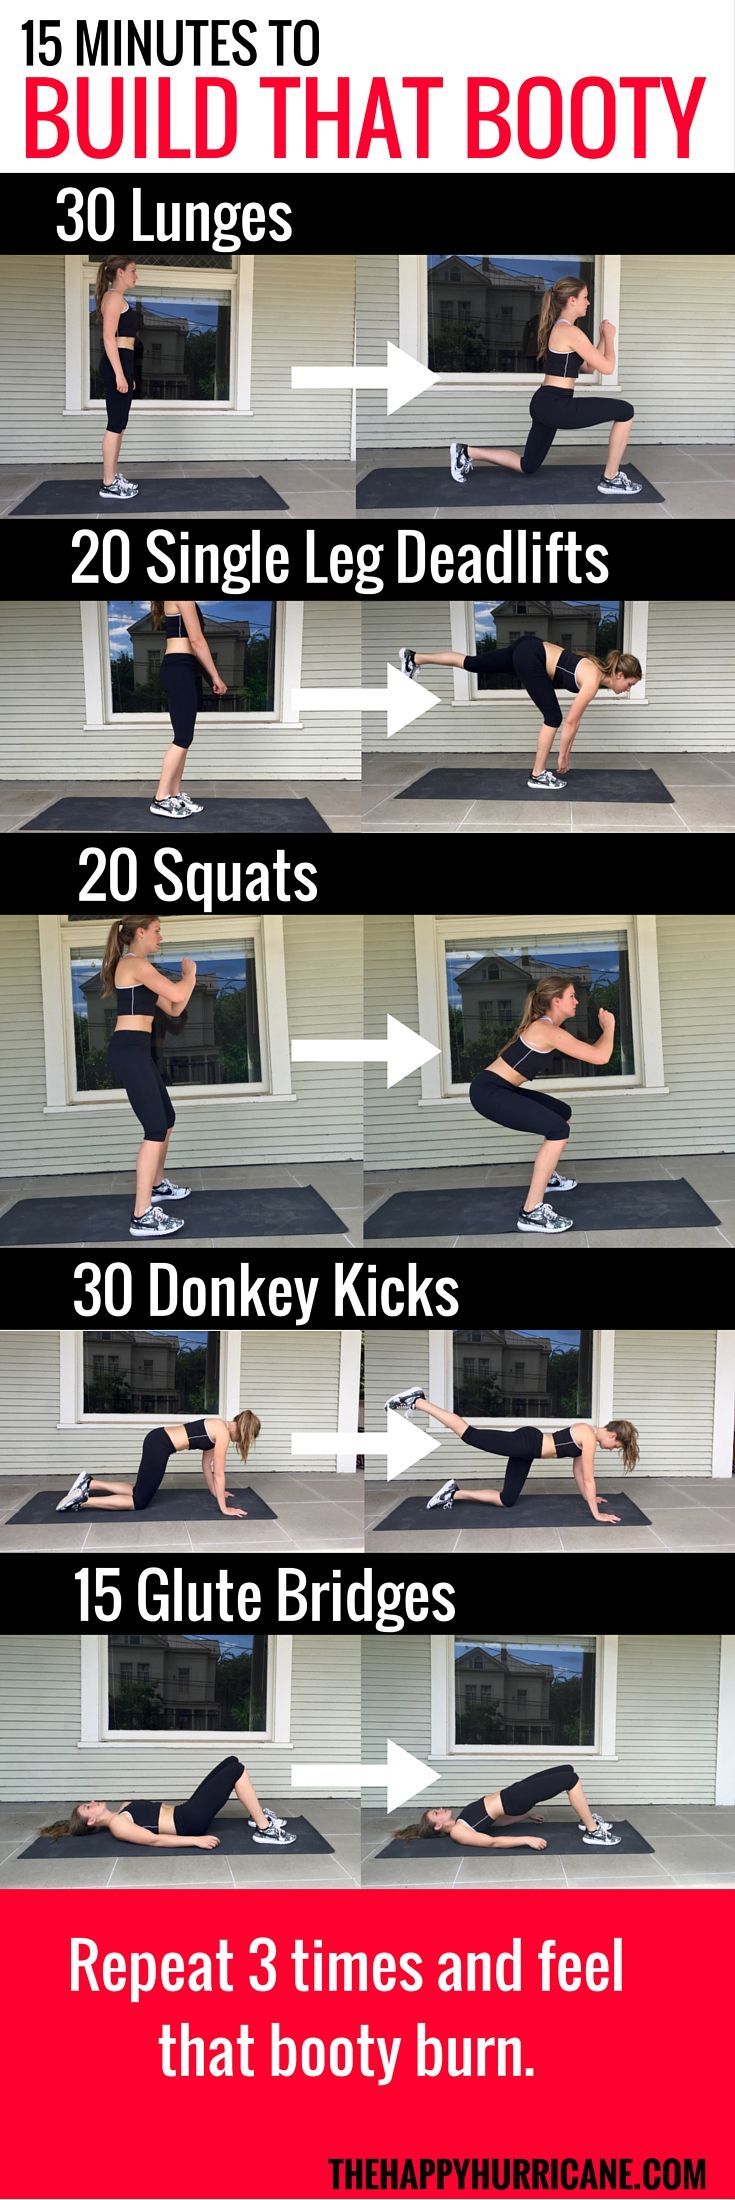 10 30 Day But Challenge Ideas At Home Workouts Workout Routine Workout